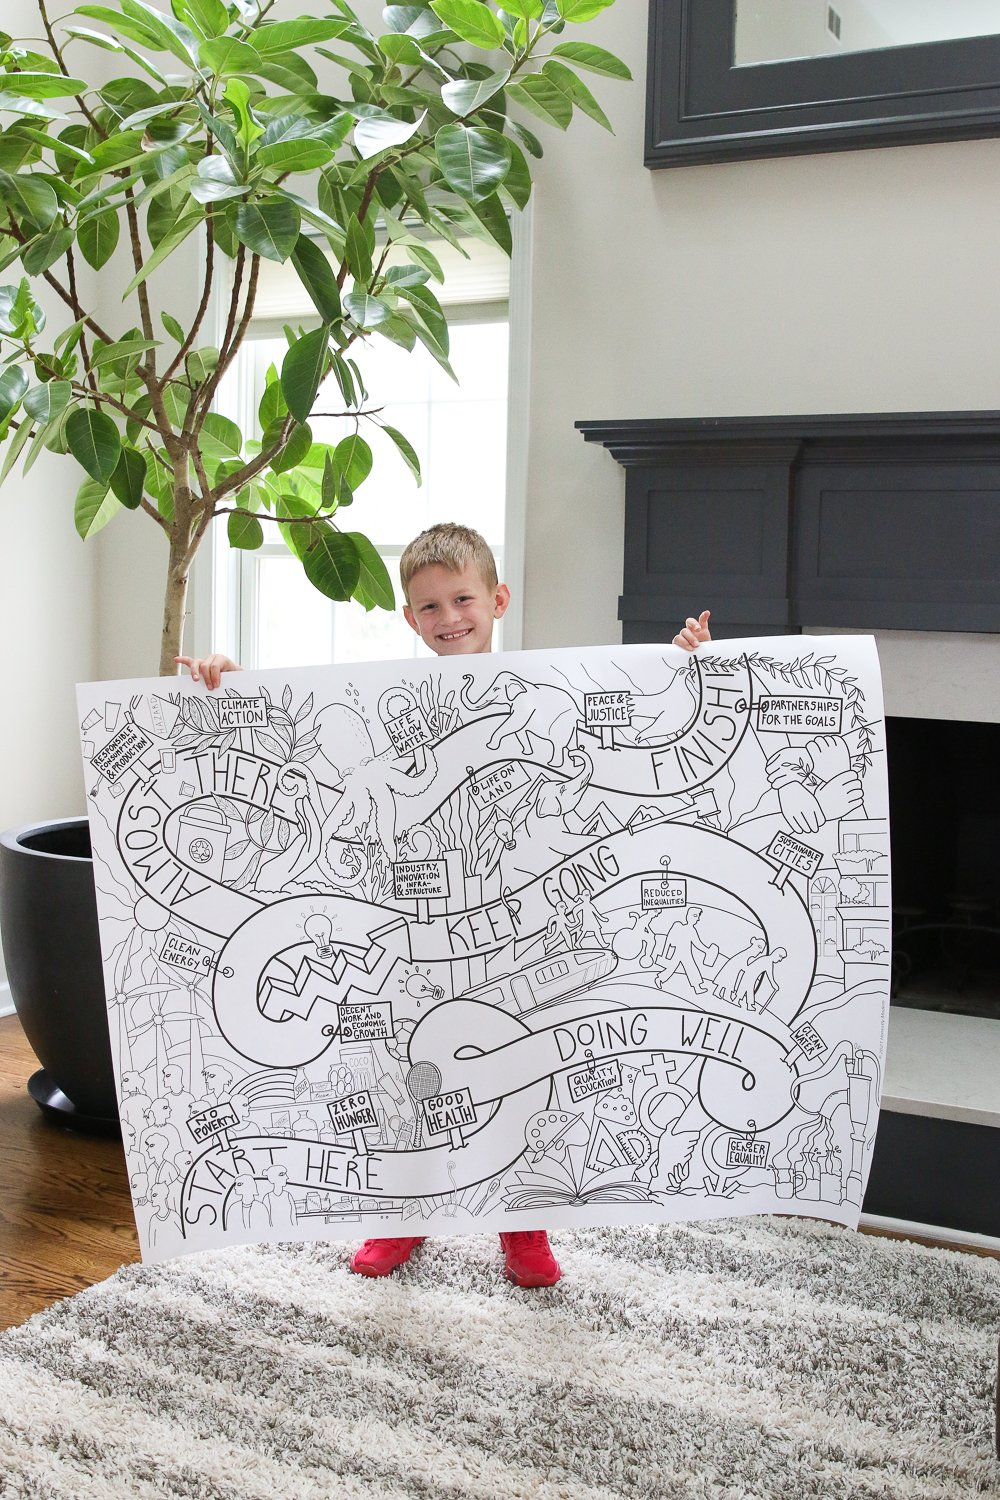 a young boy holding a large coloring poster in a living room